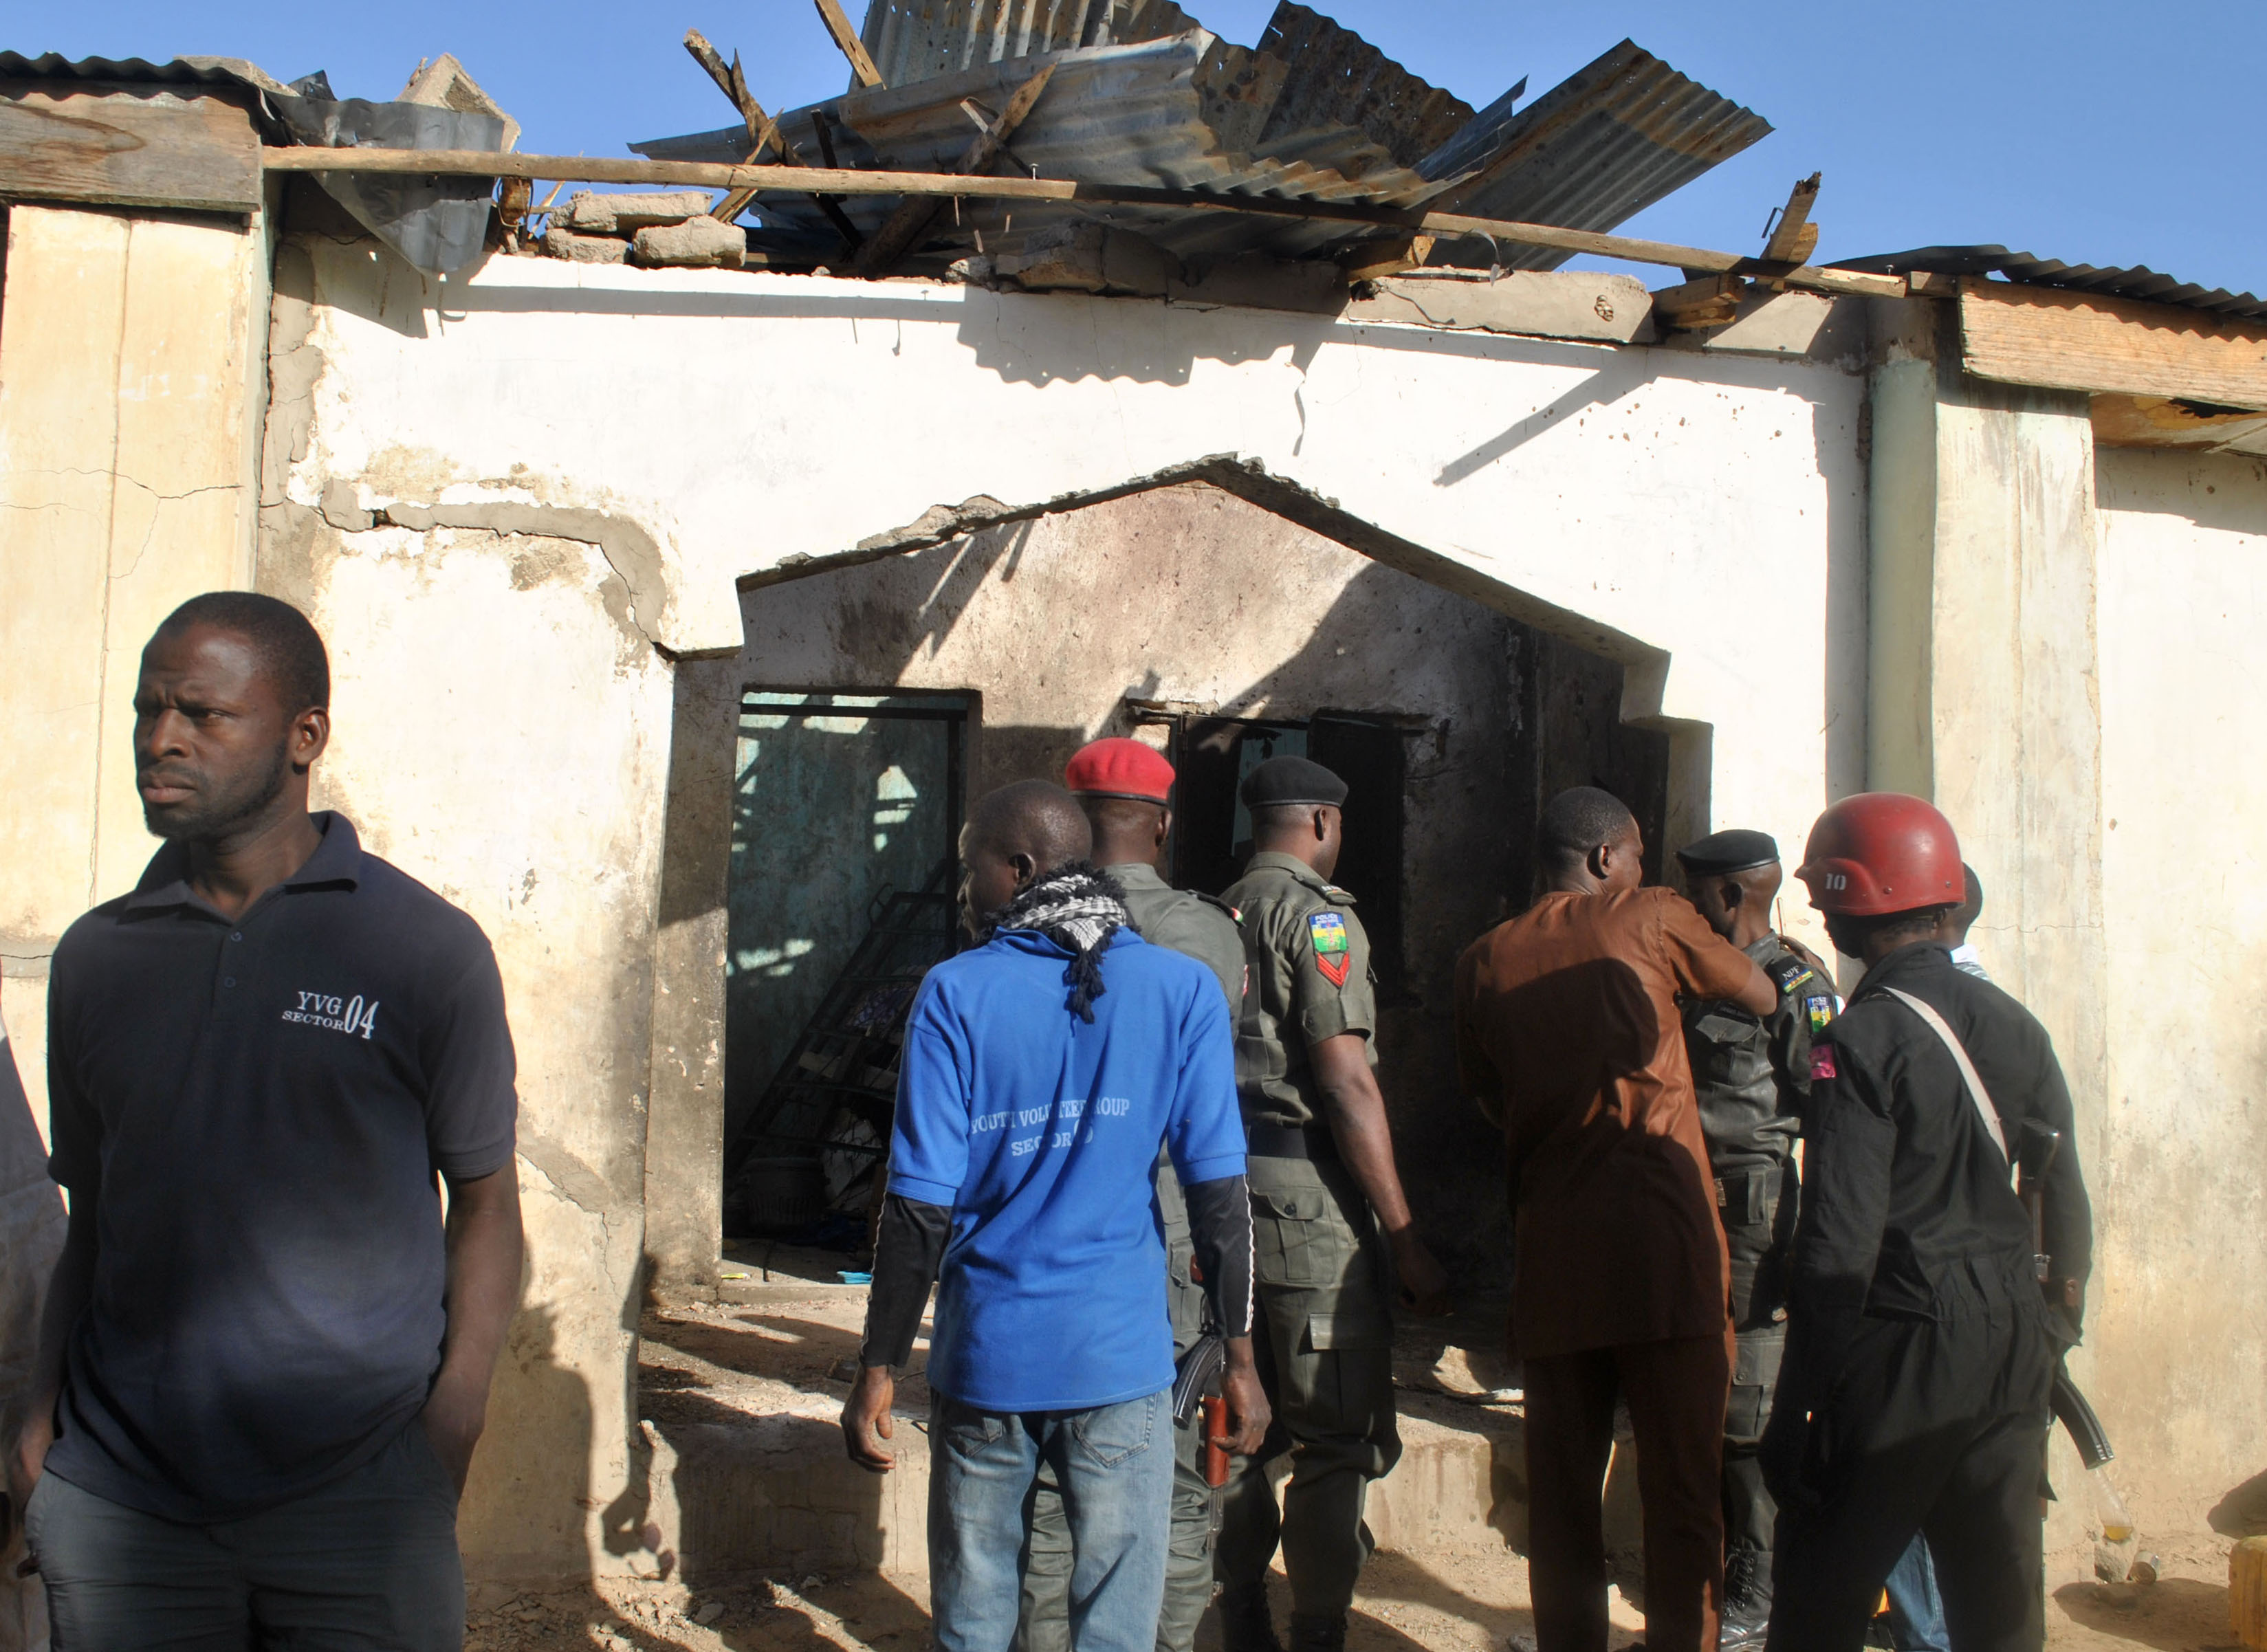 People gather at a damaged building following an attack by Boko Haram in Maiduguri, Nigeria Monday, Dec. 28, 2015. Boko Haram Islamic extremists struck the northeastern Nigerian city of Maiduguri for the first time in months Monday with rocket-propelled grenades and multiple suicide bombers, witnesses said. At least 50 people were killed and the death toll could go higher. (AP Photo/Jossy Ola)